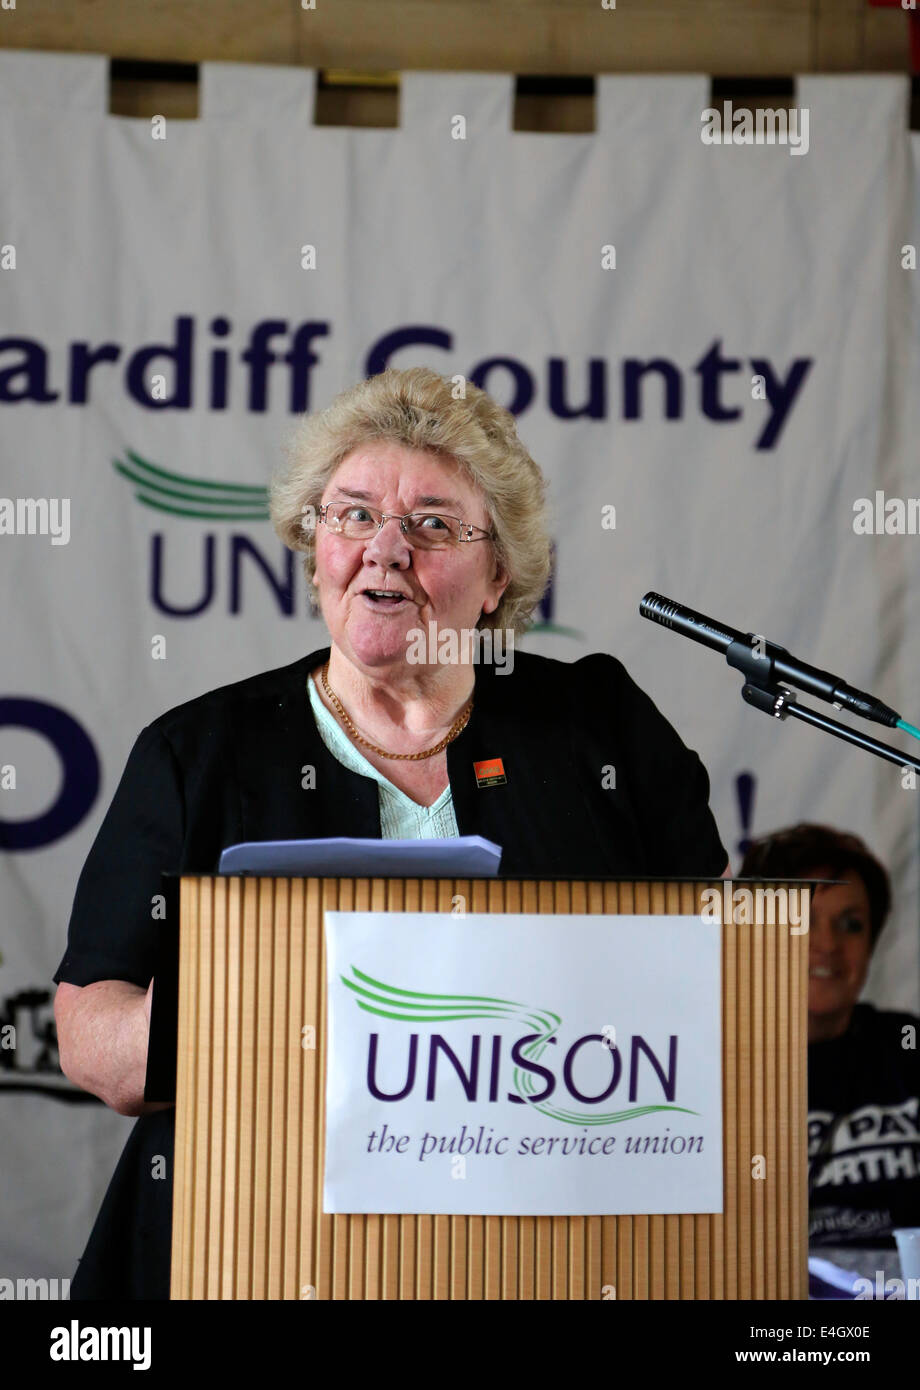 Cardiff, Wales, UK. 10th July, 2014. Public Sector Strike one day strike 10th July 2014. Speaker at the Temple of - Stock Image